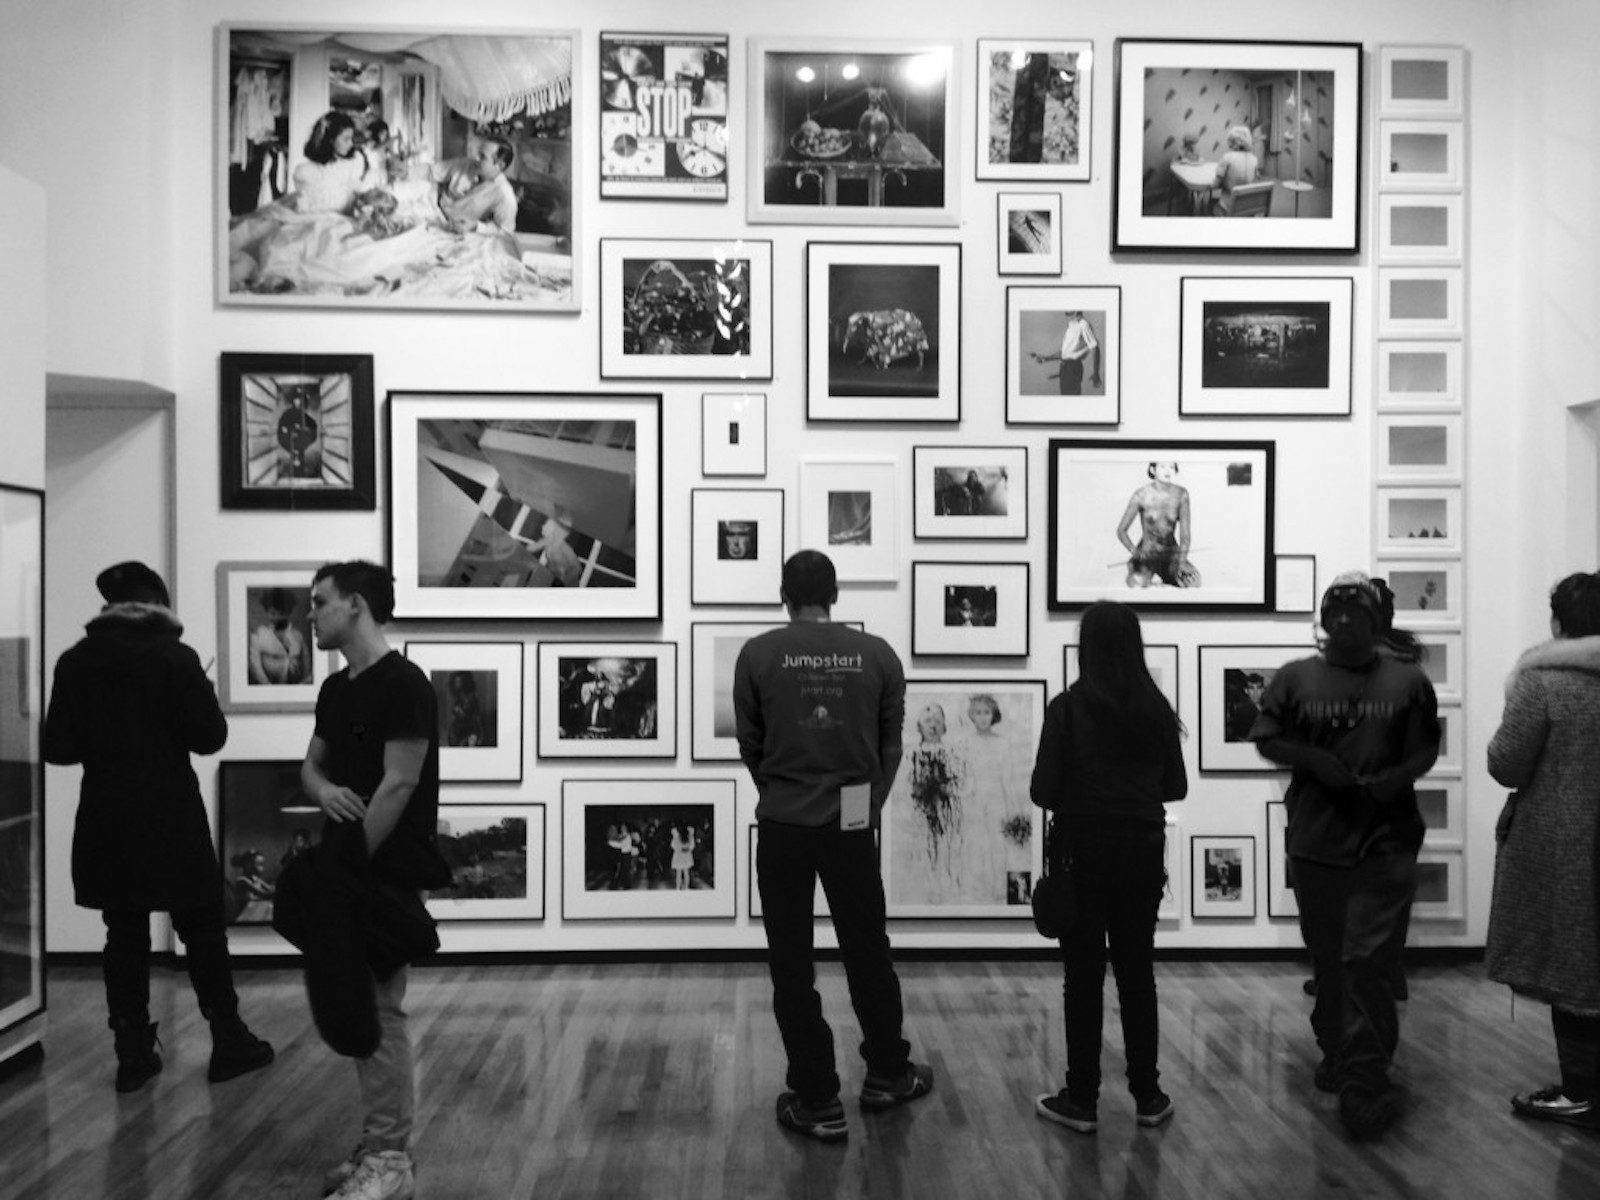 PHOTO: GRACE HAUCK Visitors peruse the main floor of the Museum of Contemporary Photography's latest exhibition, MoCP at 40, which debuted on January 25 and will run through April 10.